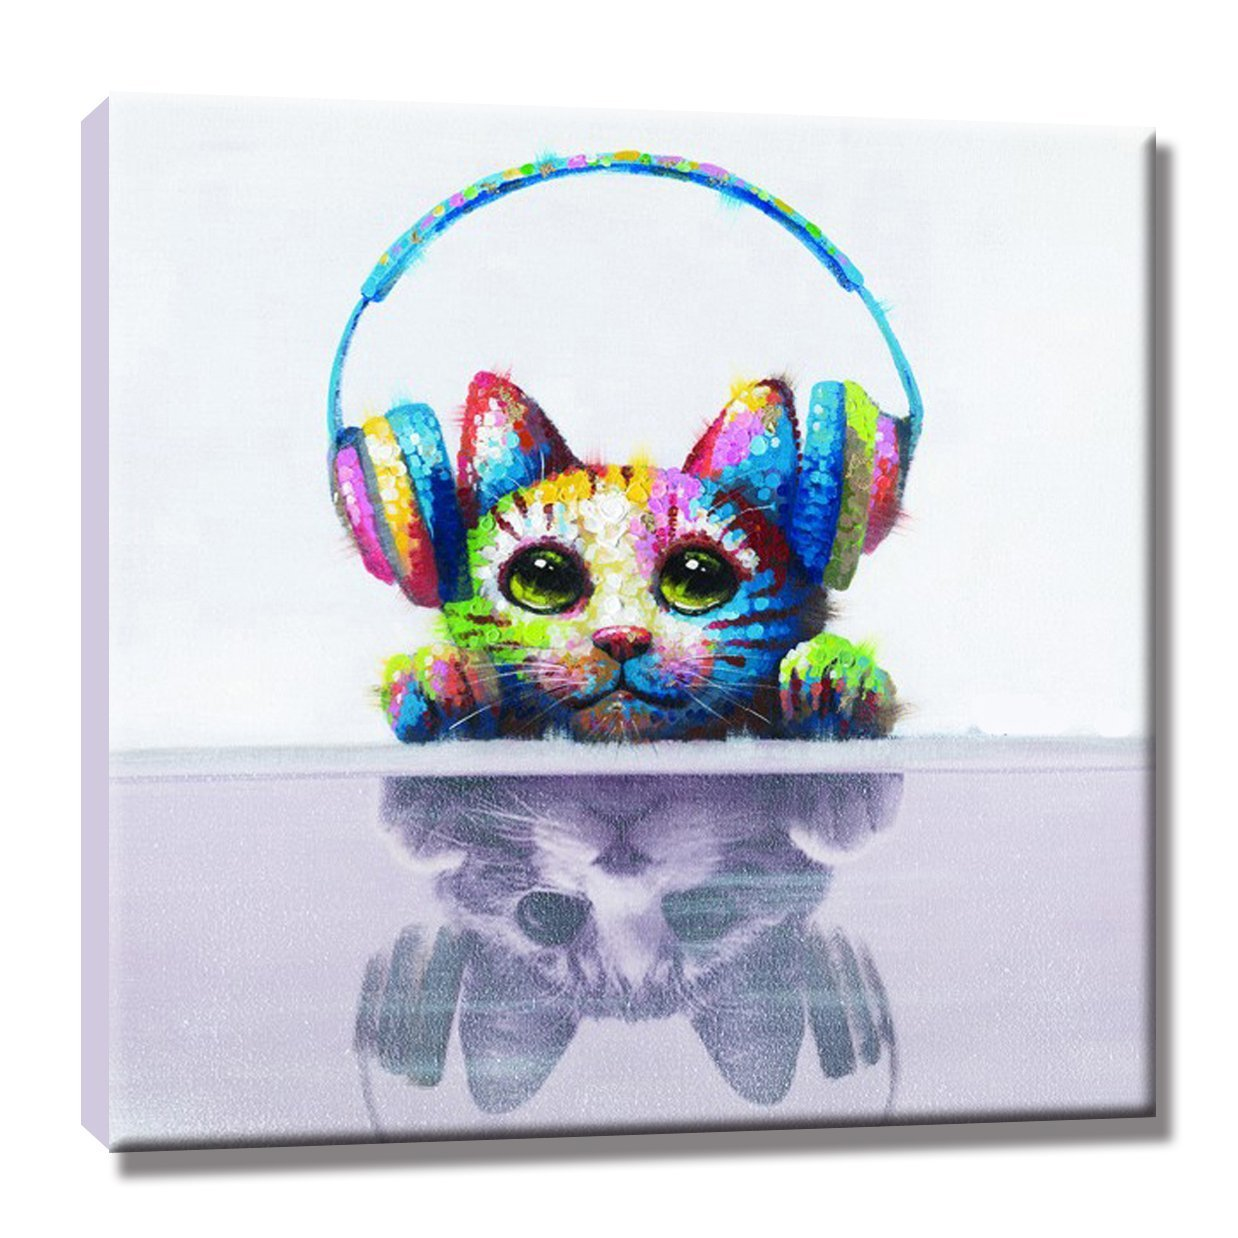 Colorful Animal Hand Painted Oil Paintings on Canvas Stretched with Frames Cute Cat Abstract Modern Wall Artwork for Home Decor,Ready to Hang(Music Cat)